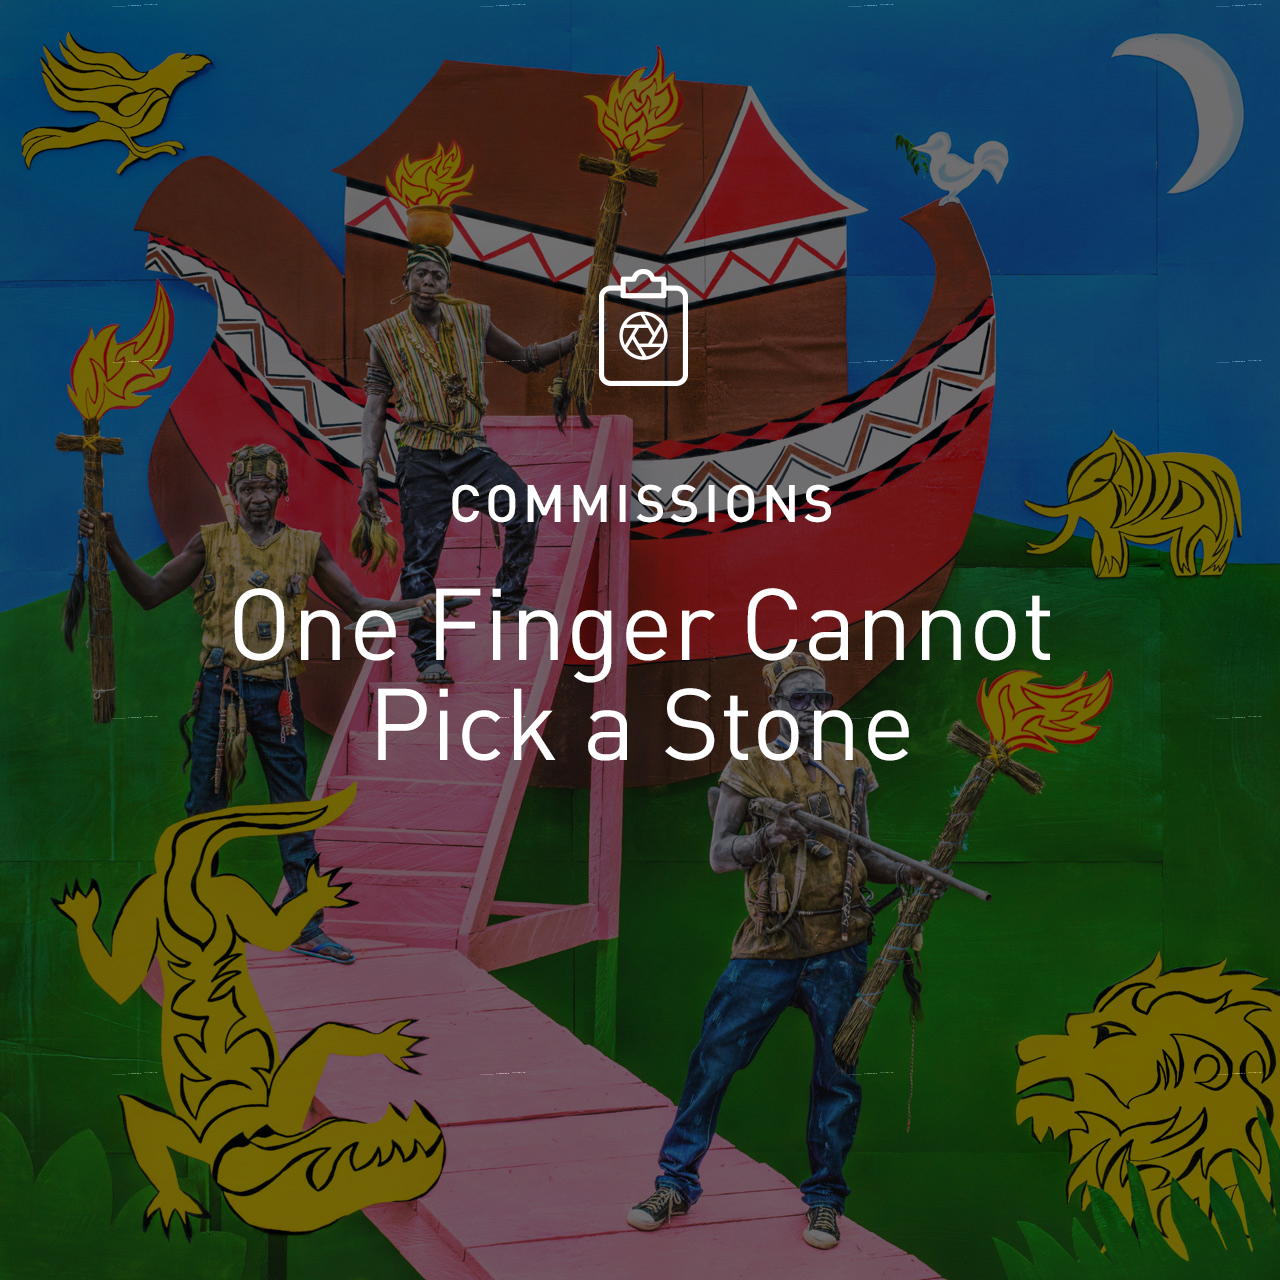 new_c_One finger cannot pick a stone - Commissions